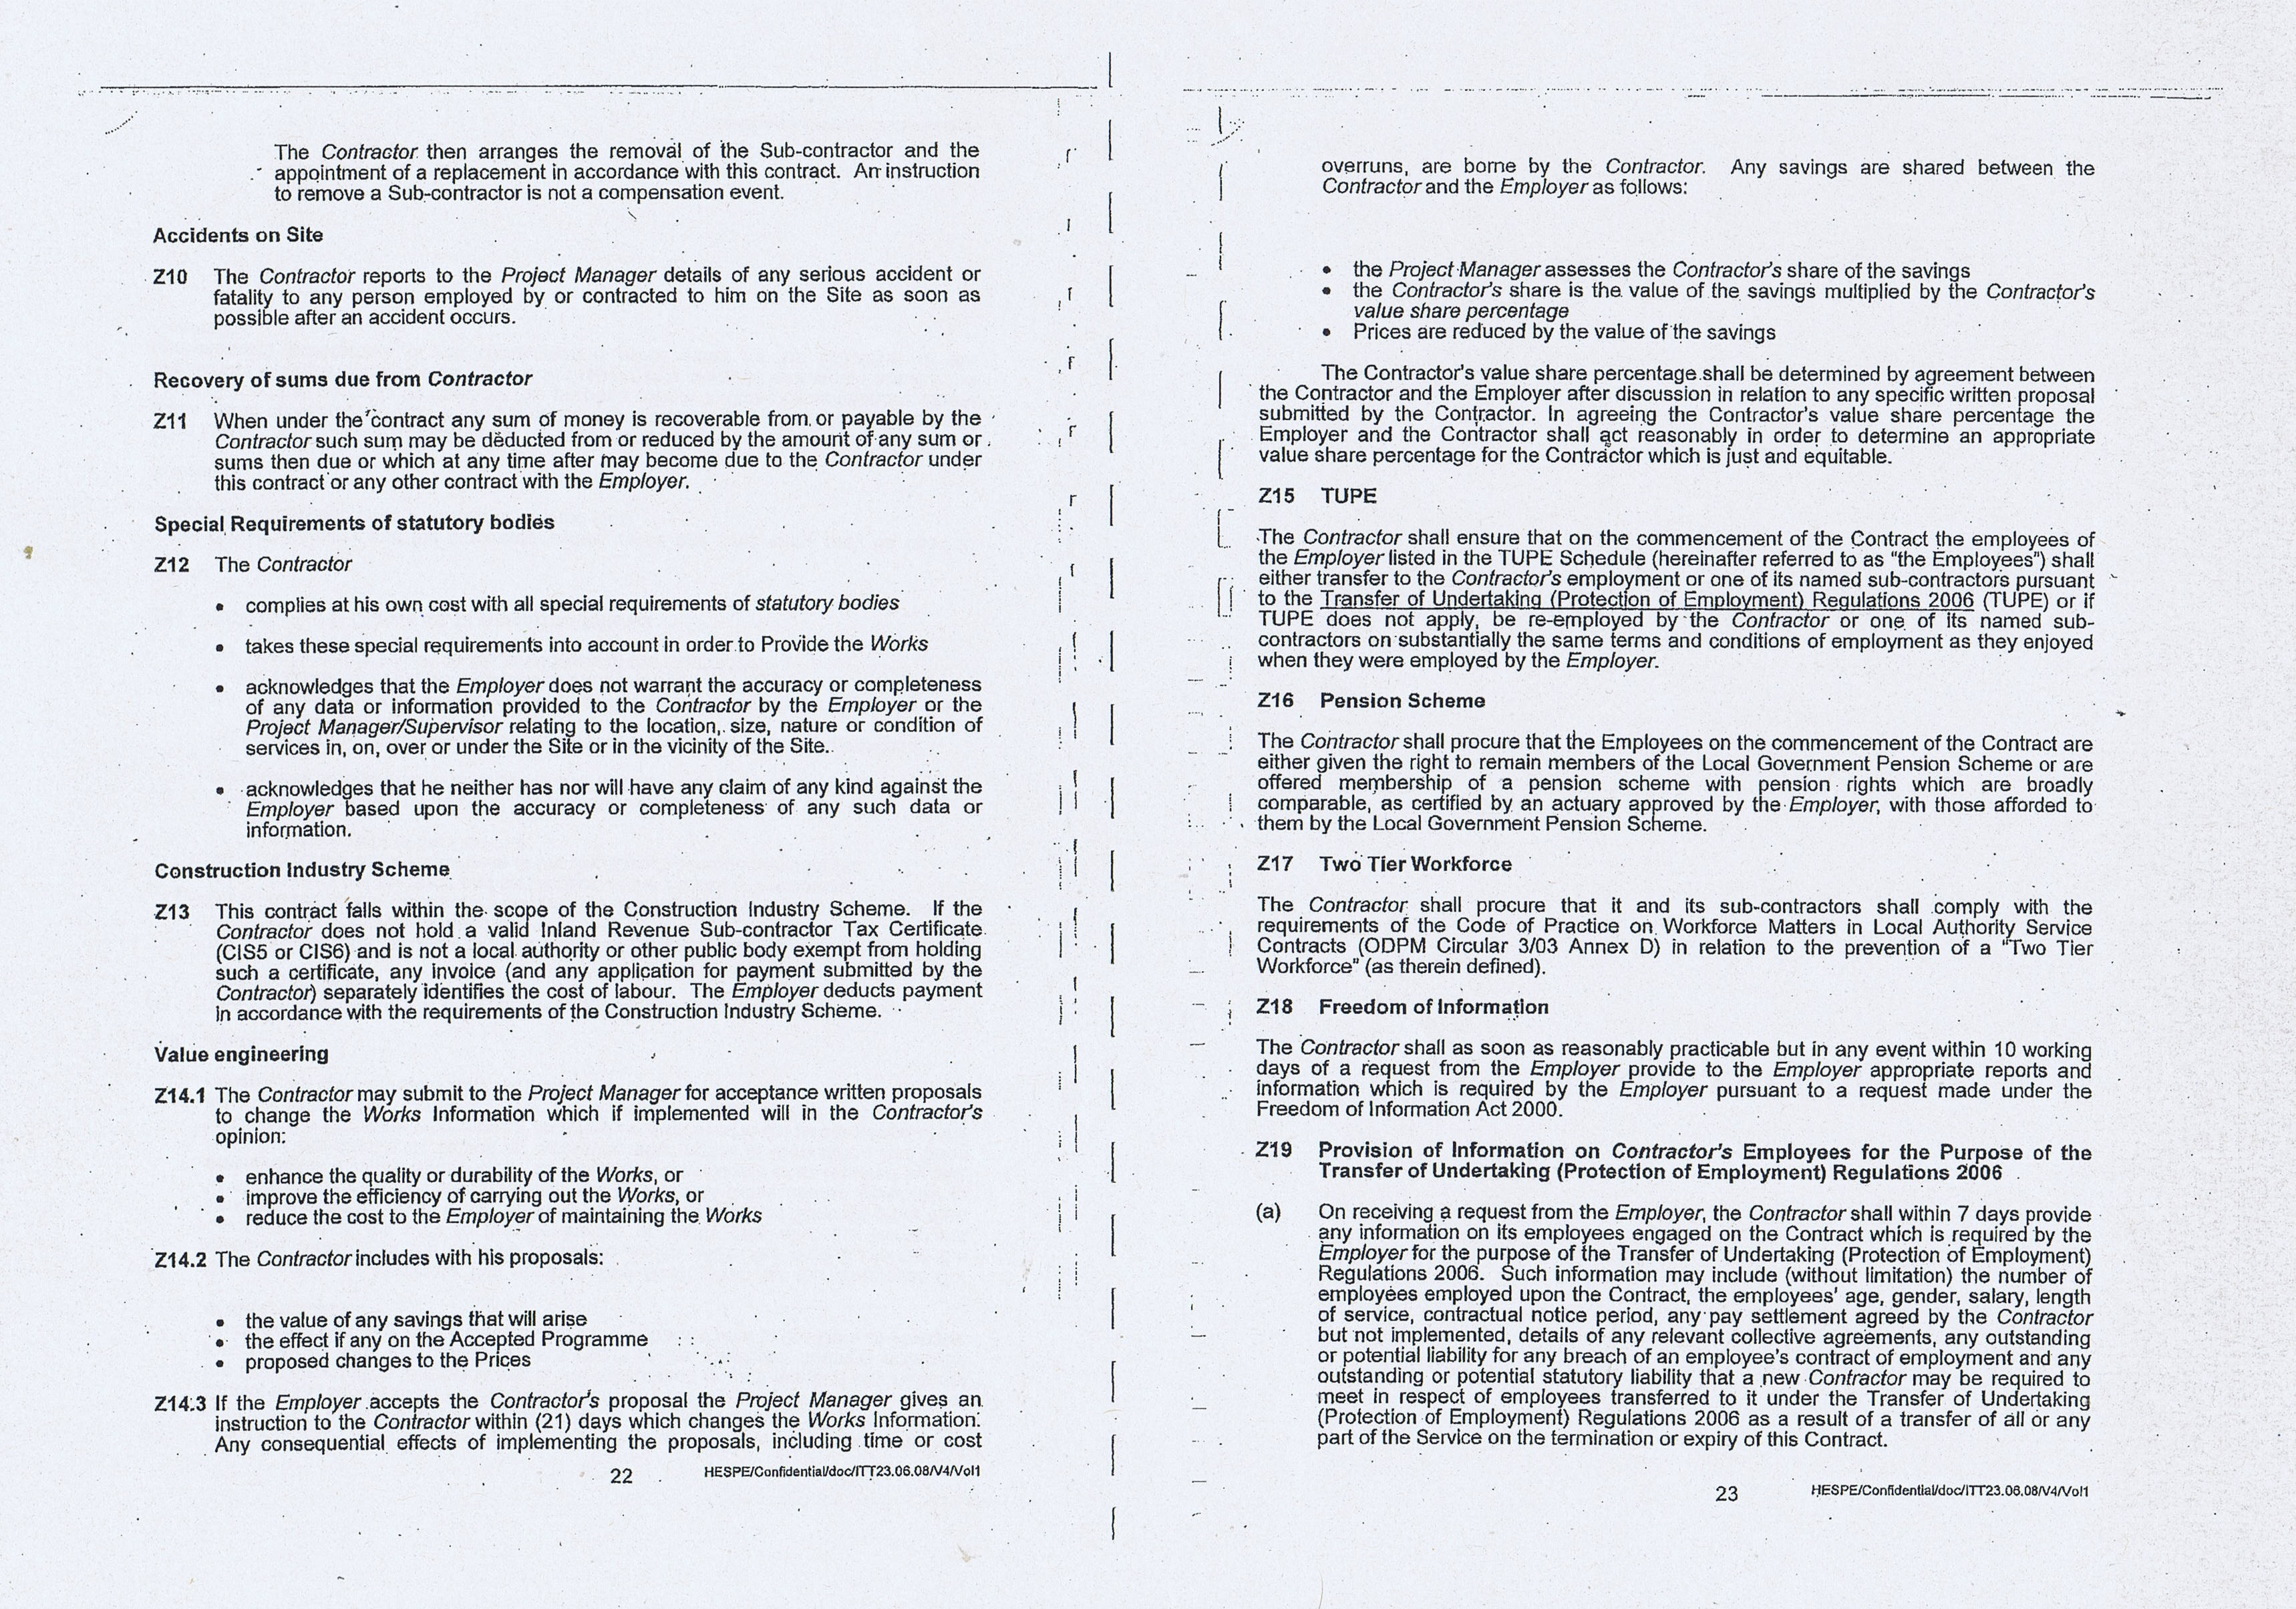 Wirral Council Colas Highways and Engineering Services Contract Page 11